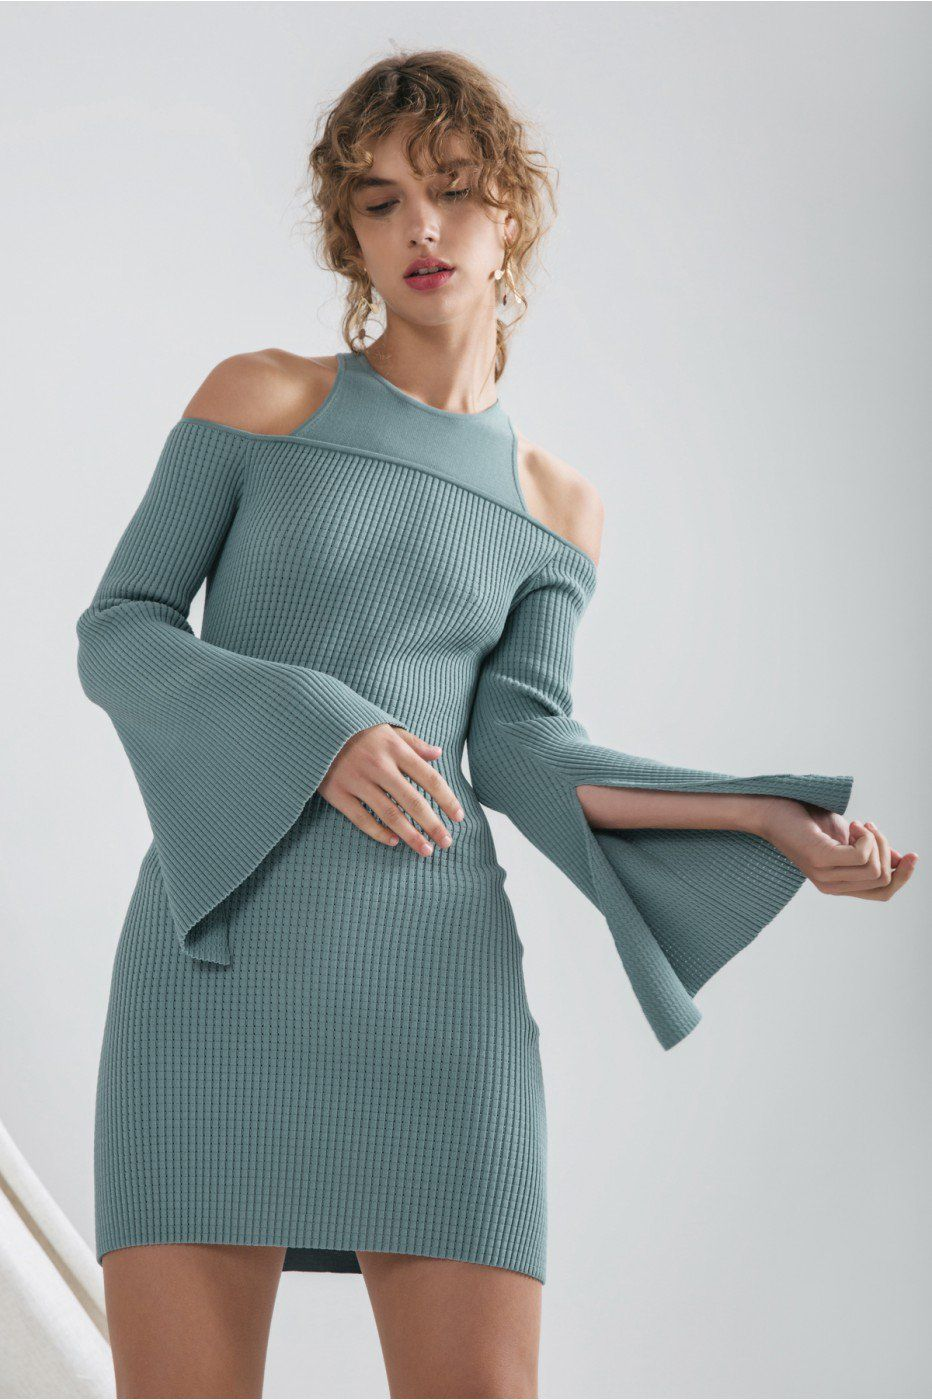 Womens Emerge Knit Dress C/Meo Collective Amazing Price Sale Fashion Style Latest For Sale Free Shipping Choice 0ZTqZeOn